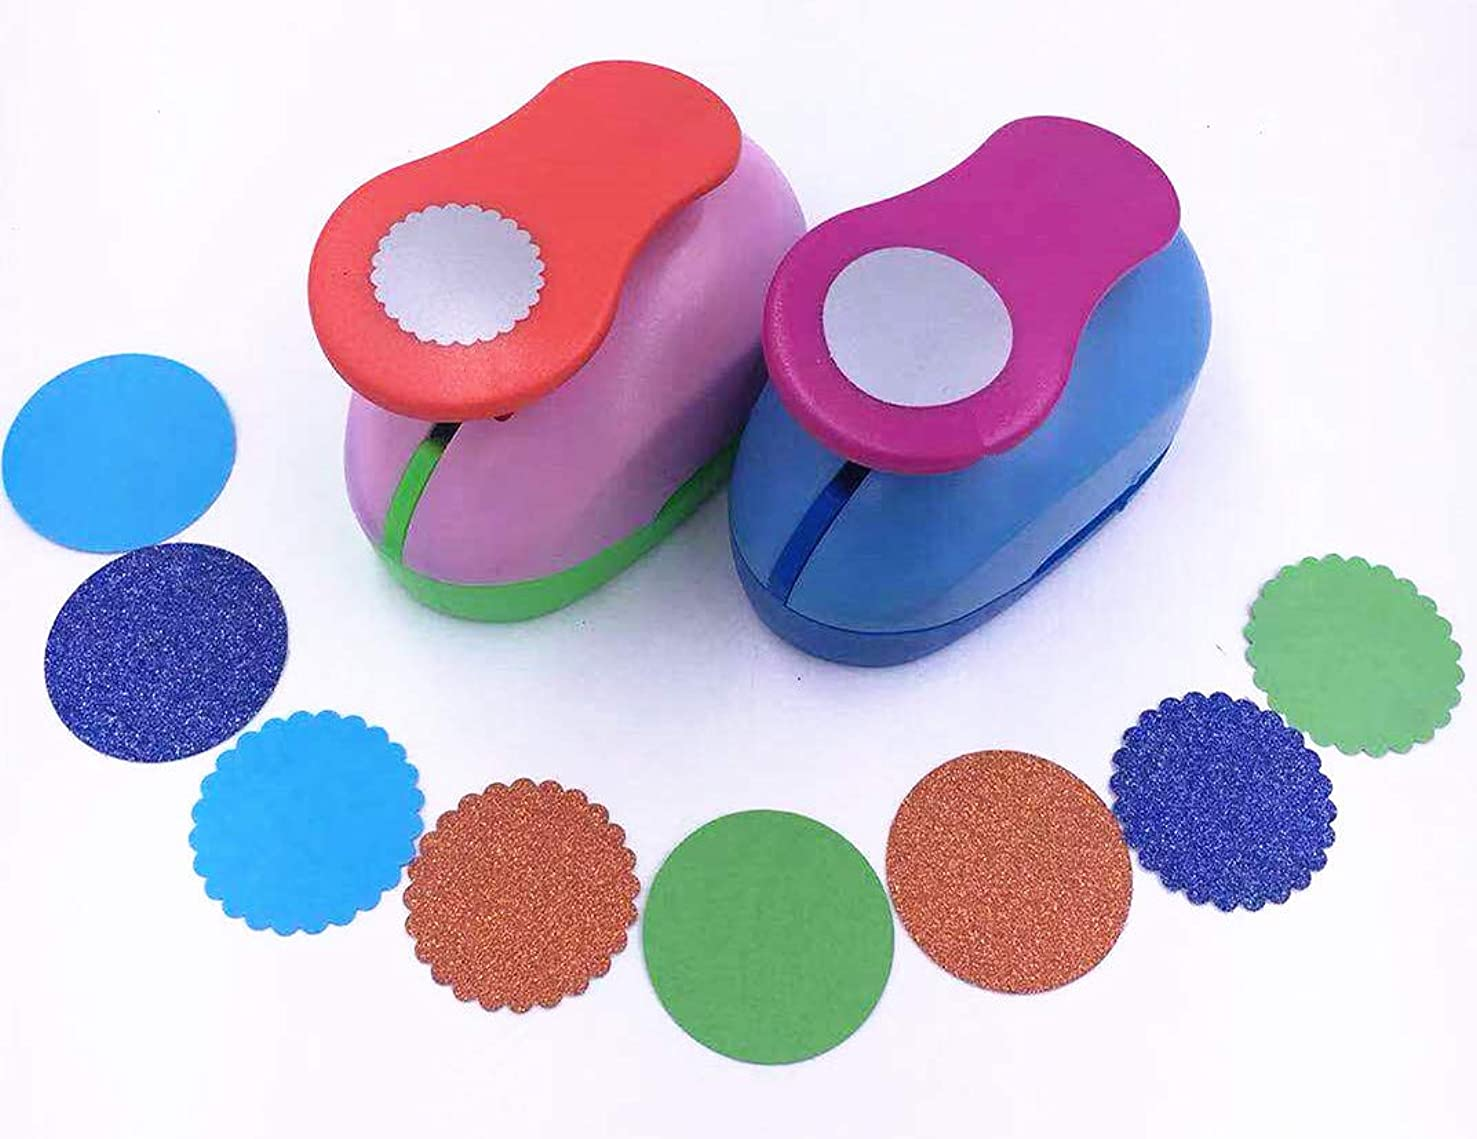 TECH-P Creative Life 2PCS 1 inch Circle+Wave Circle Craft Punch Set Paper Punch Tool Eva Punches for Making Arts Crafts Projects Cards Scrapbooking Garland Hanging Decorations